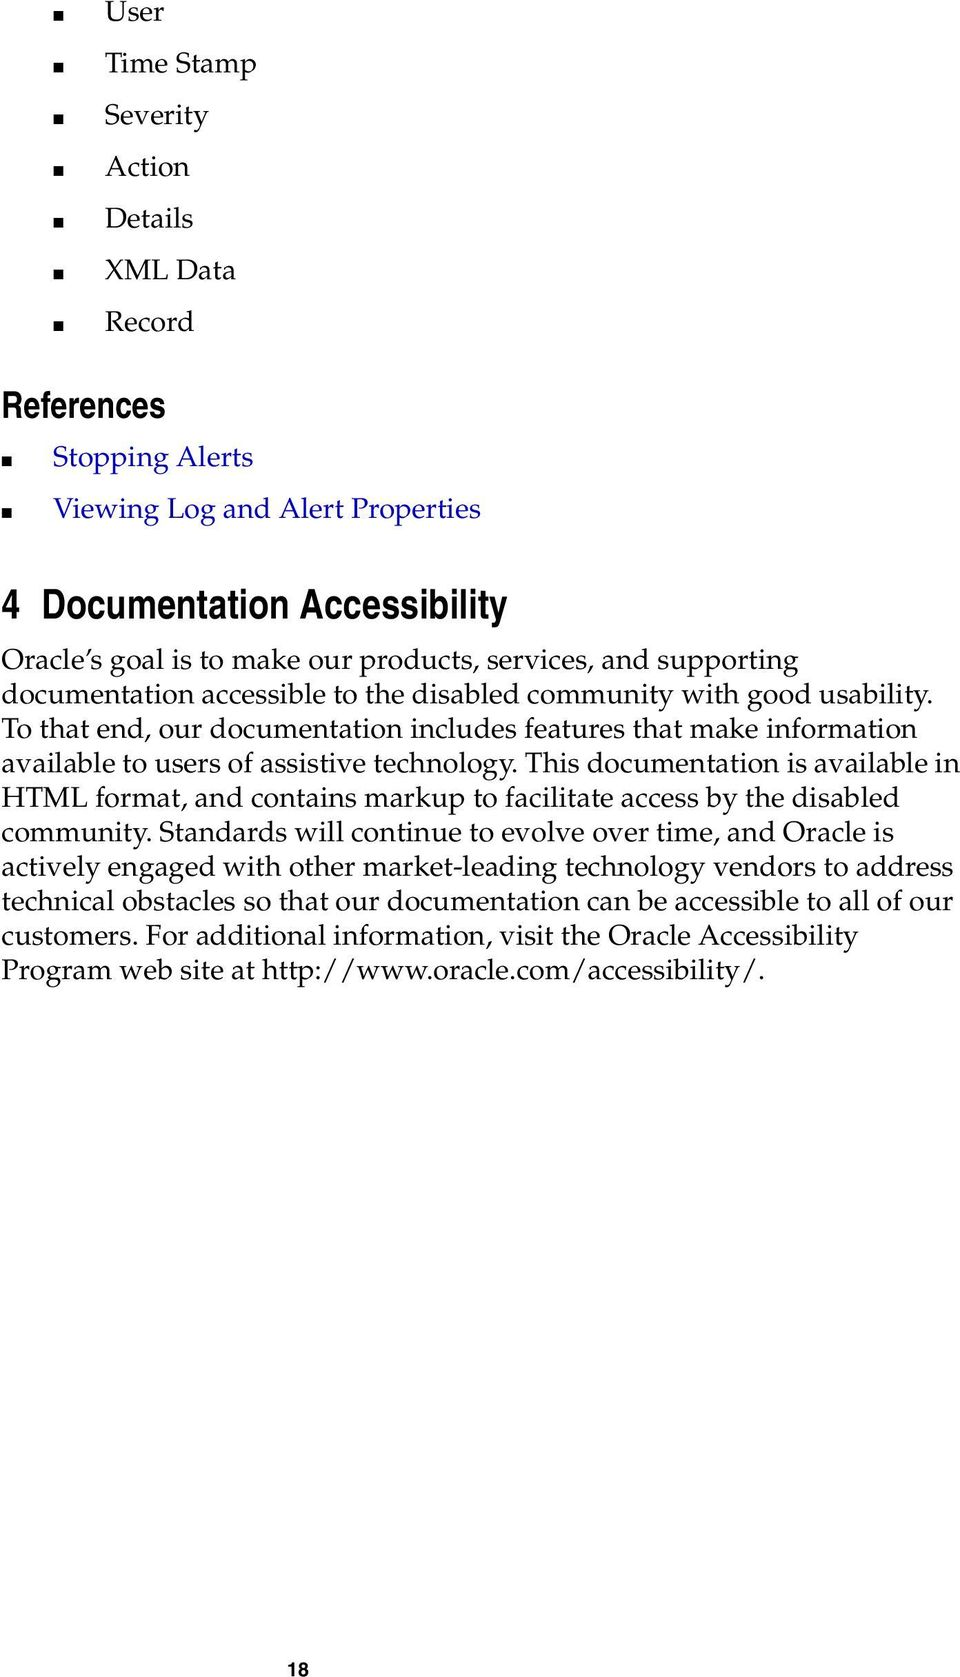 This documentation is available in HTML format, and contains markup to facilitate access by the disabled community.